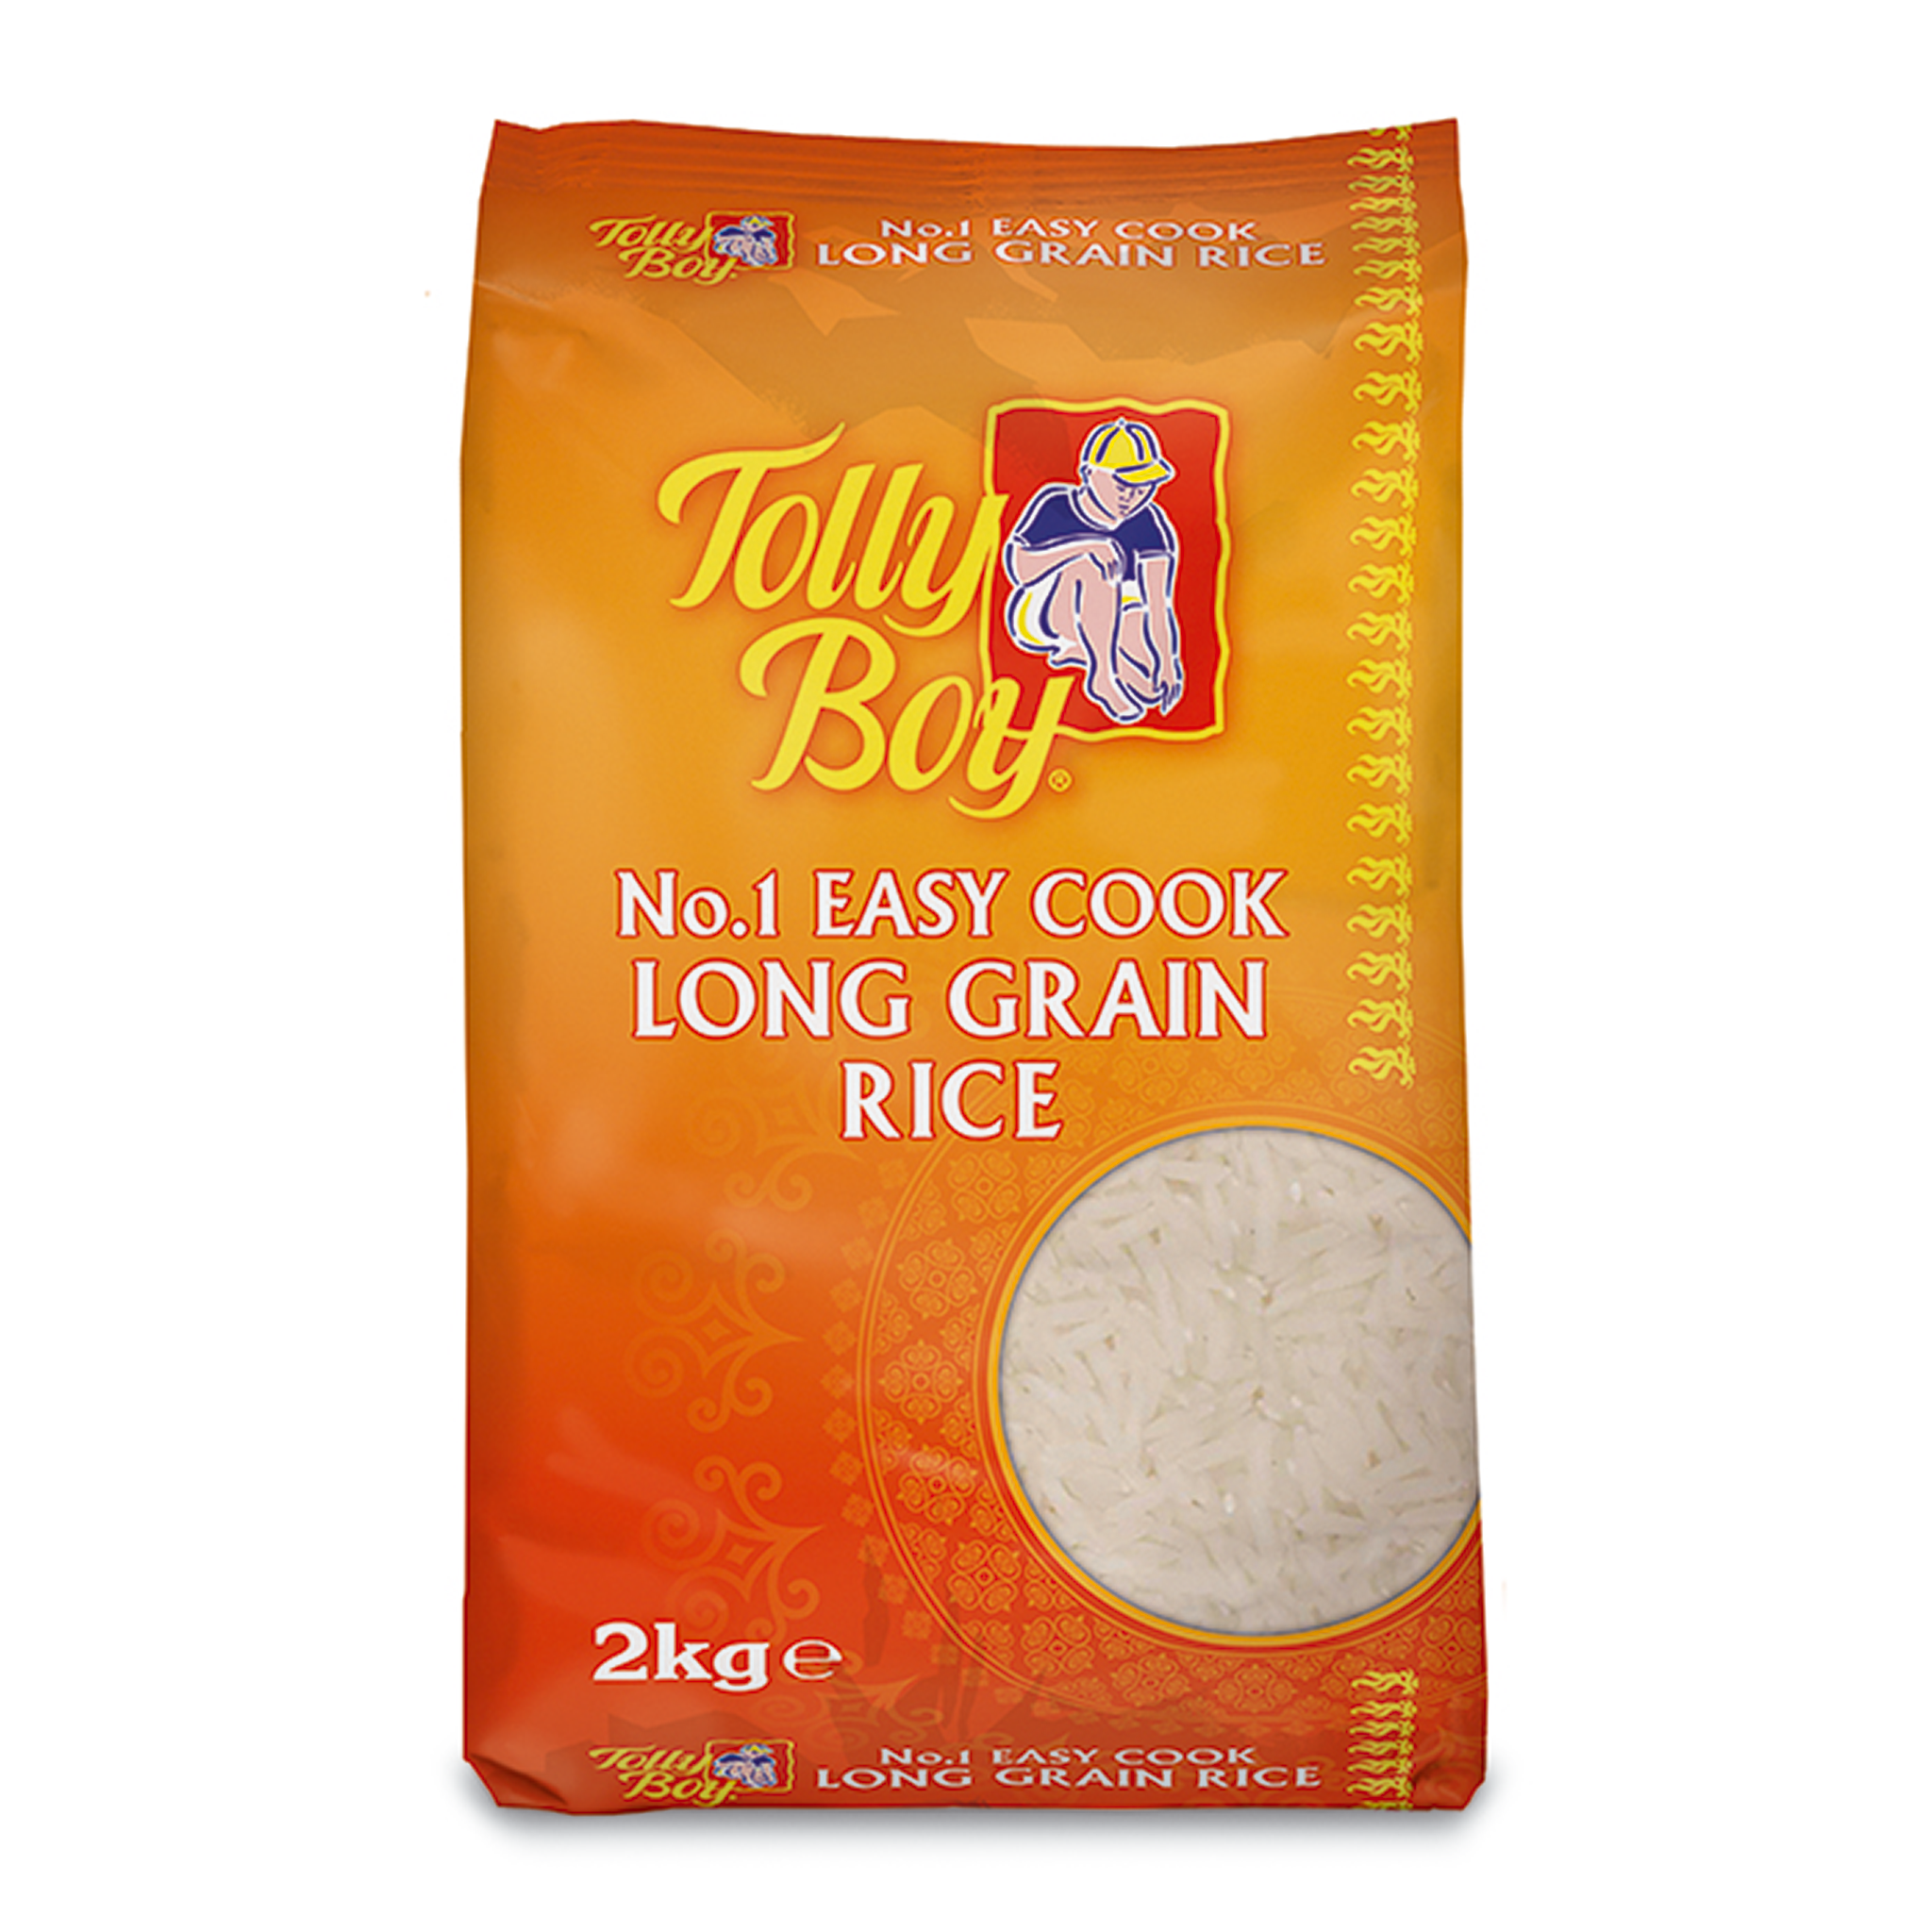 Easy Cook Long Grain White Rice 2kg by Tolly Boy